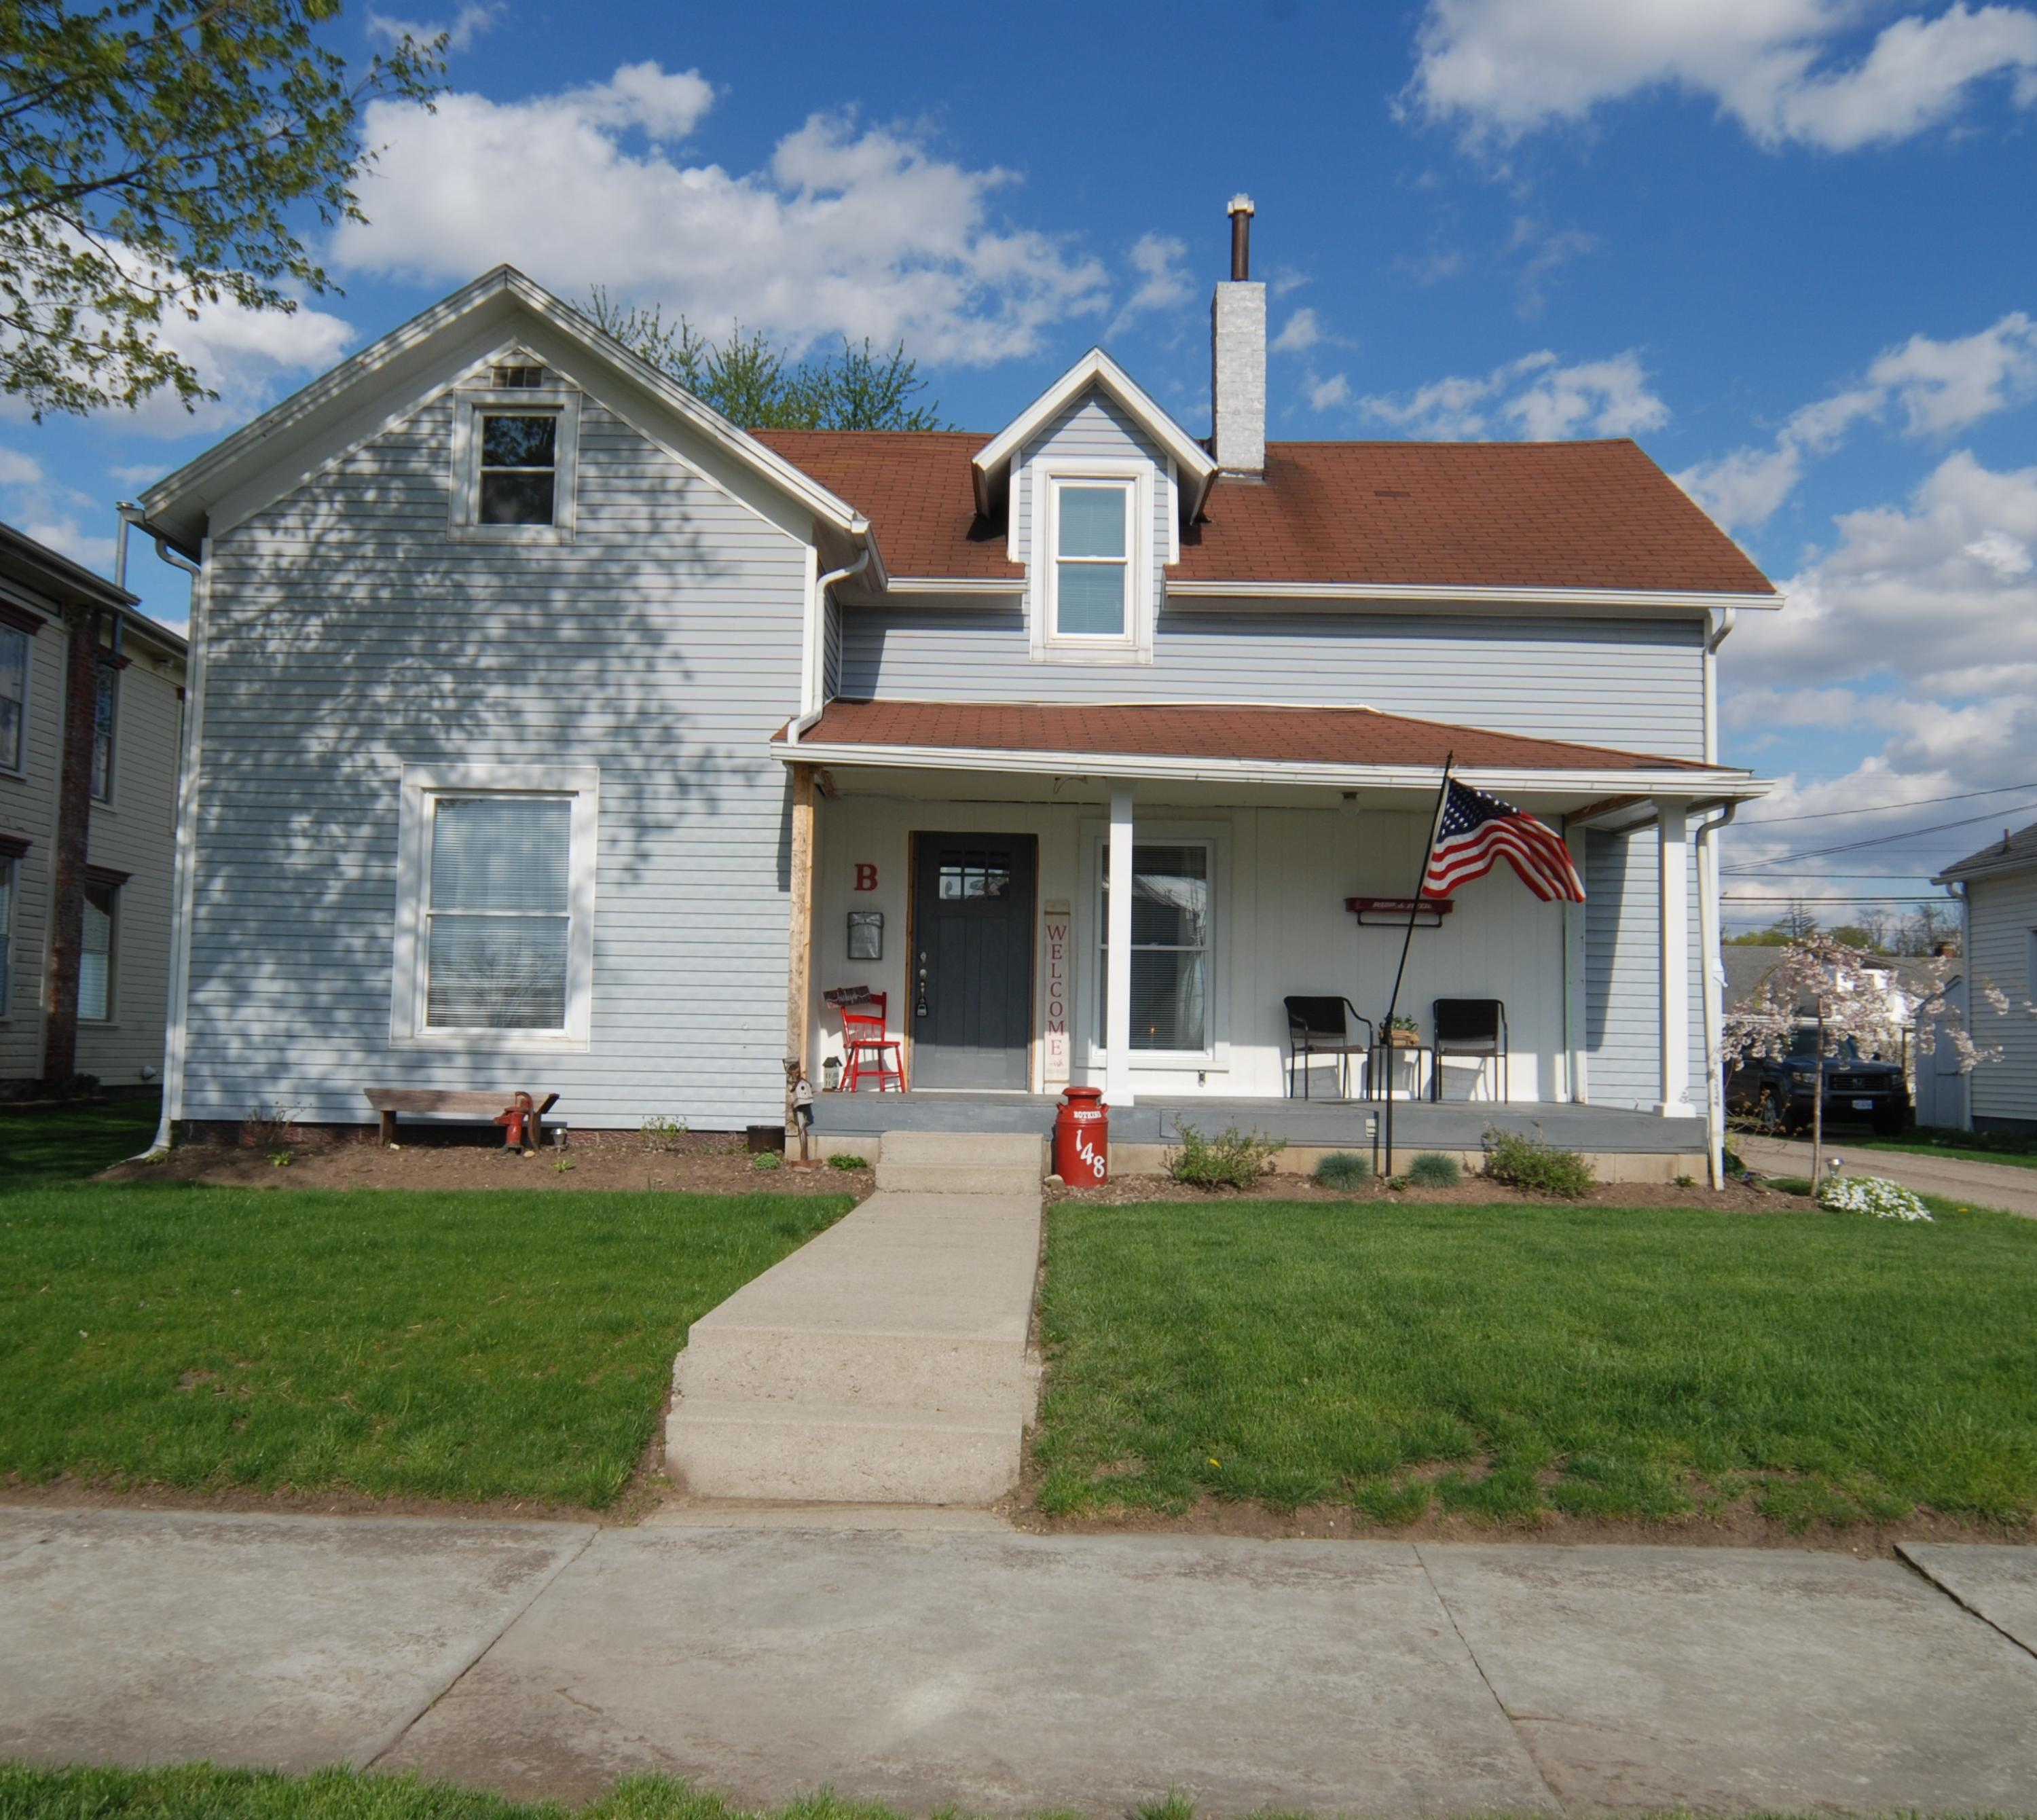 148 N Franklin Street Property Photo - Richwood, OH real estate listing